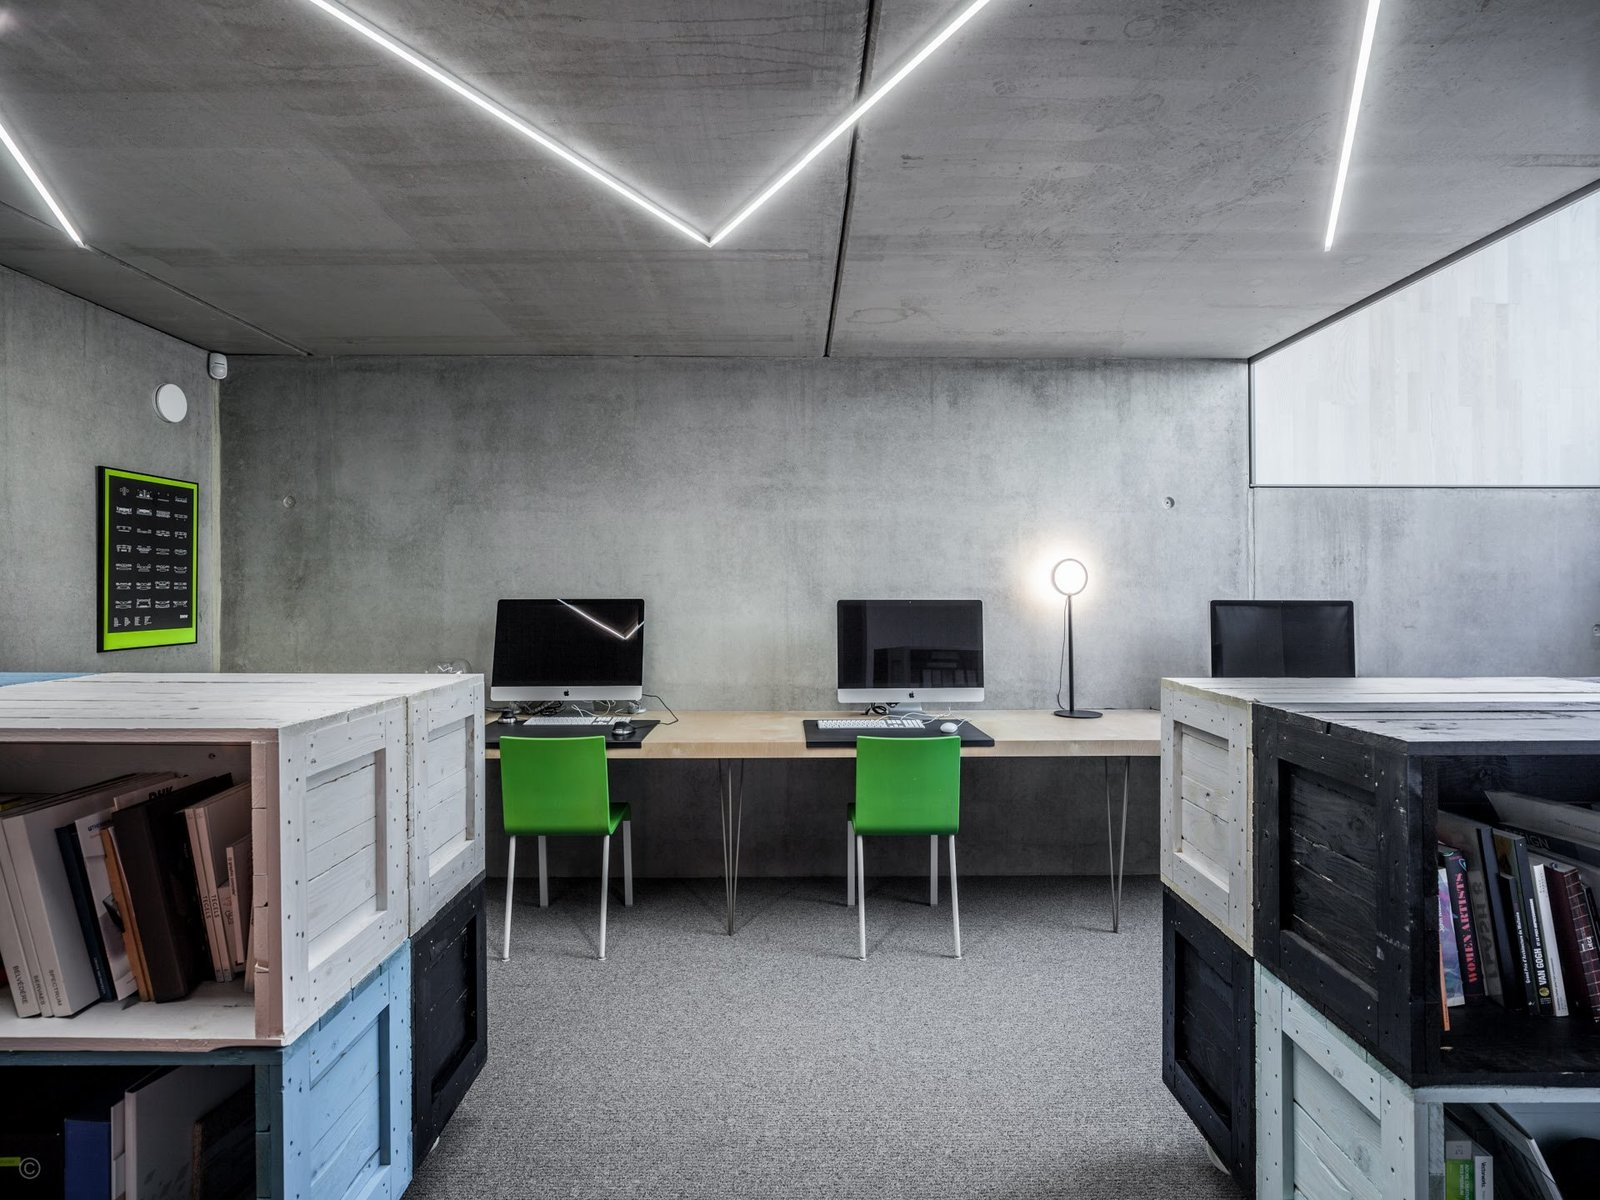 Office, Concrete Floor, Shelves, Storage, Chair, Desk, Bookcase, Carpet Floor, and Lamps  Private House and Architecture Office